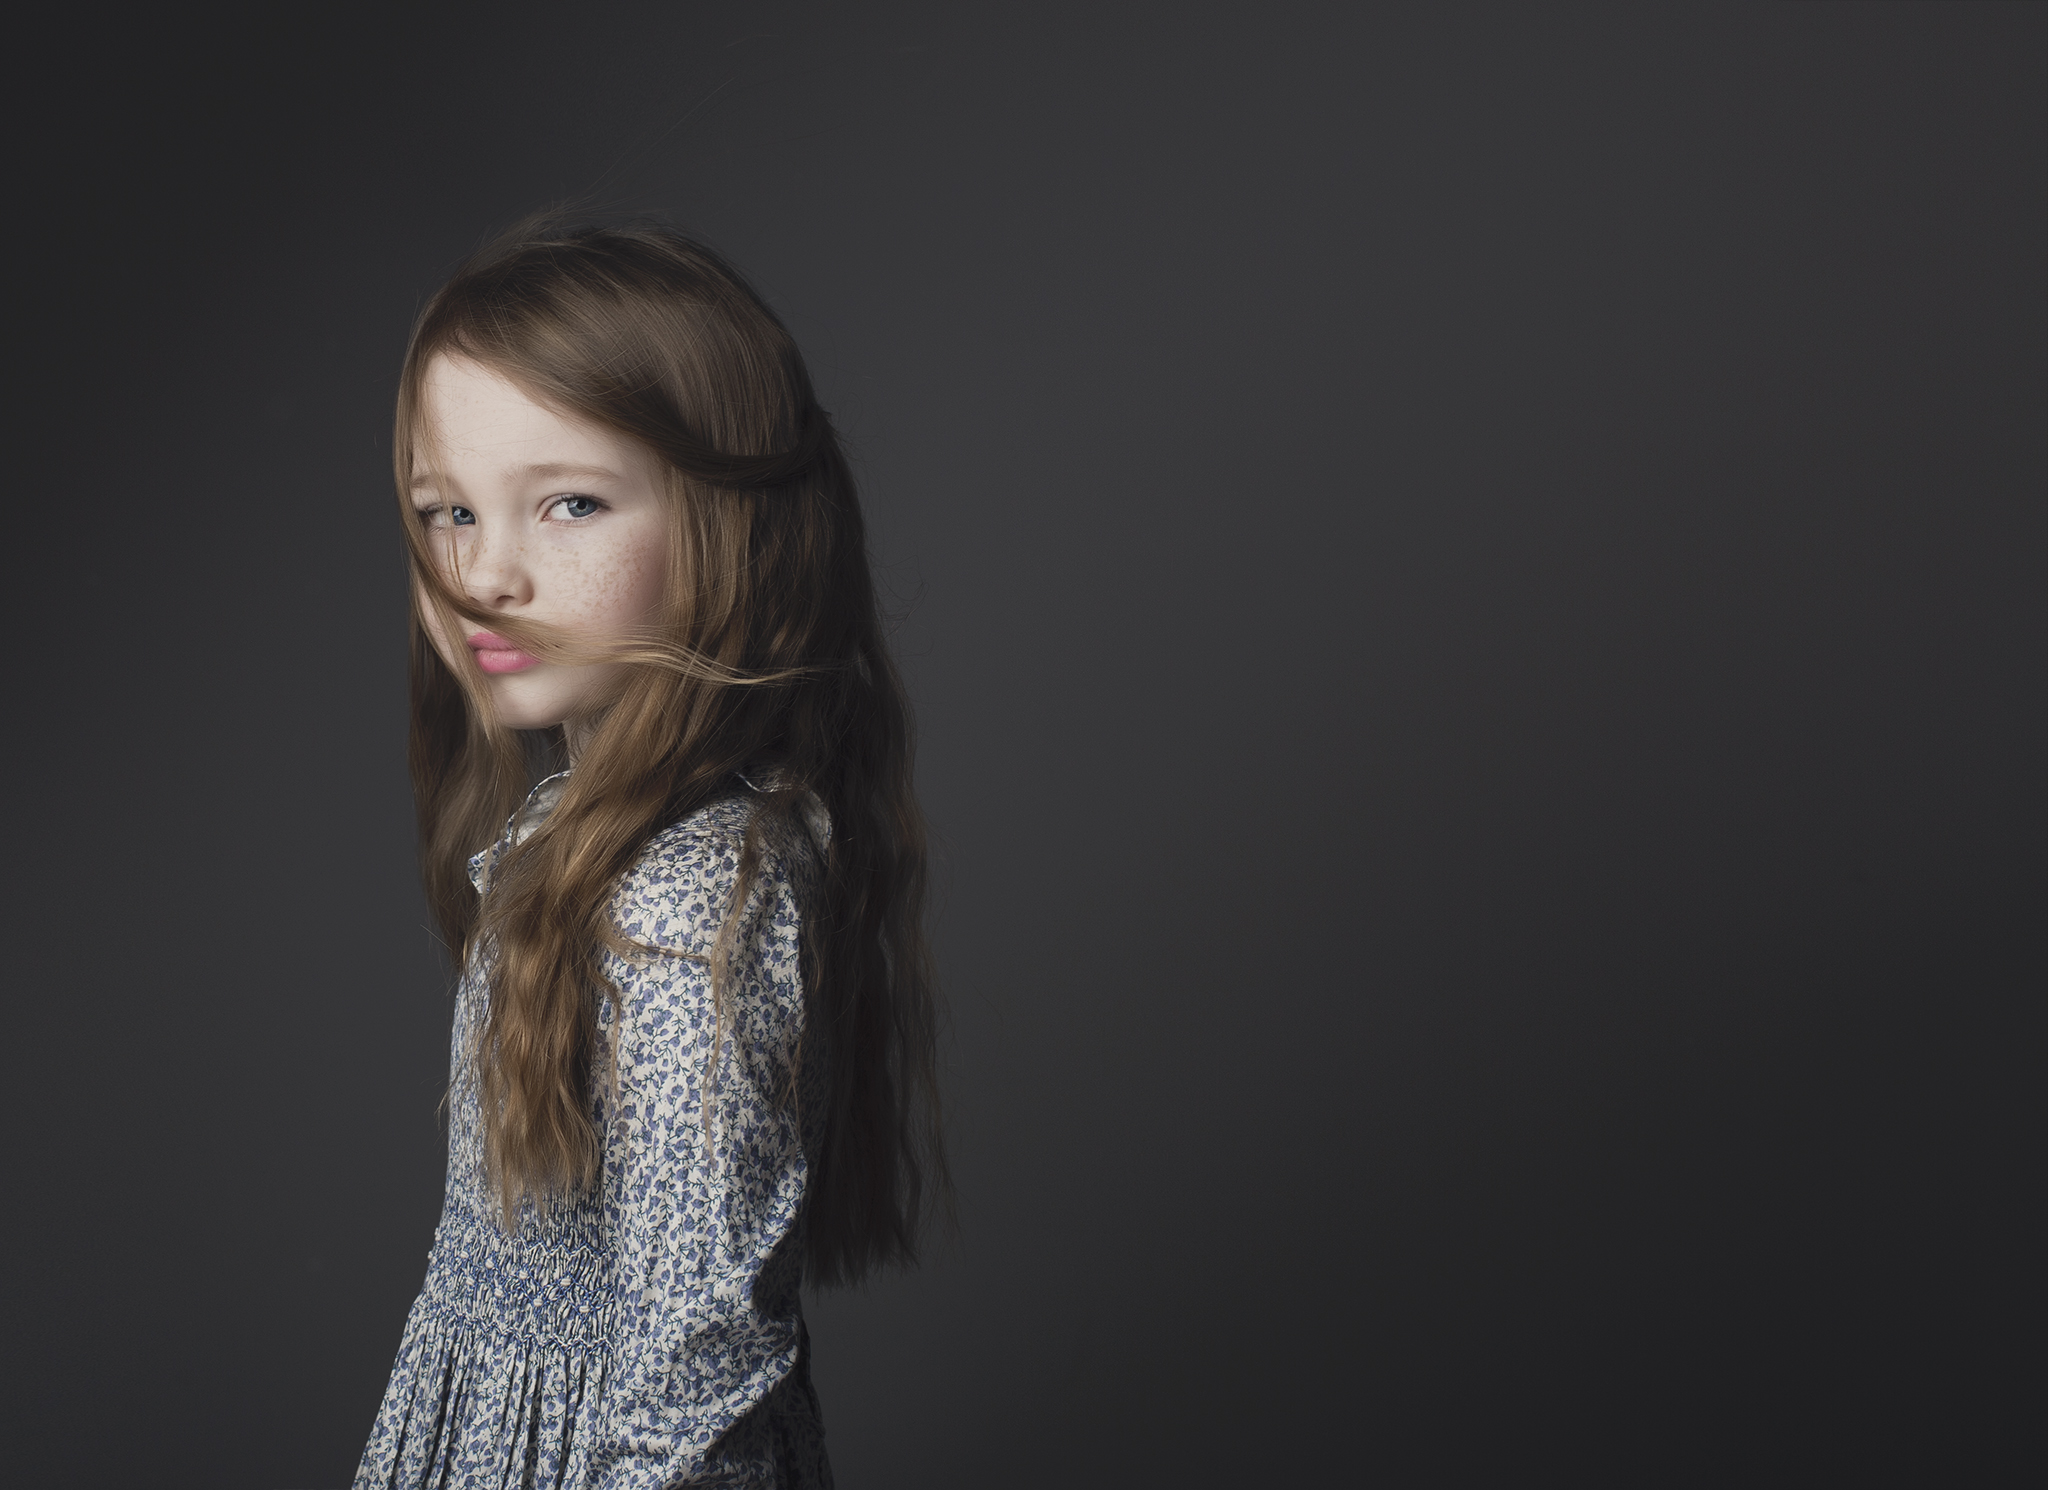 elizabethgphotography_childrens_fineart_kingslangley_hertfordshire_model_actor_updates_daisy6_kids_london.jpg